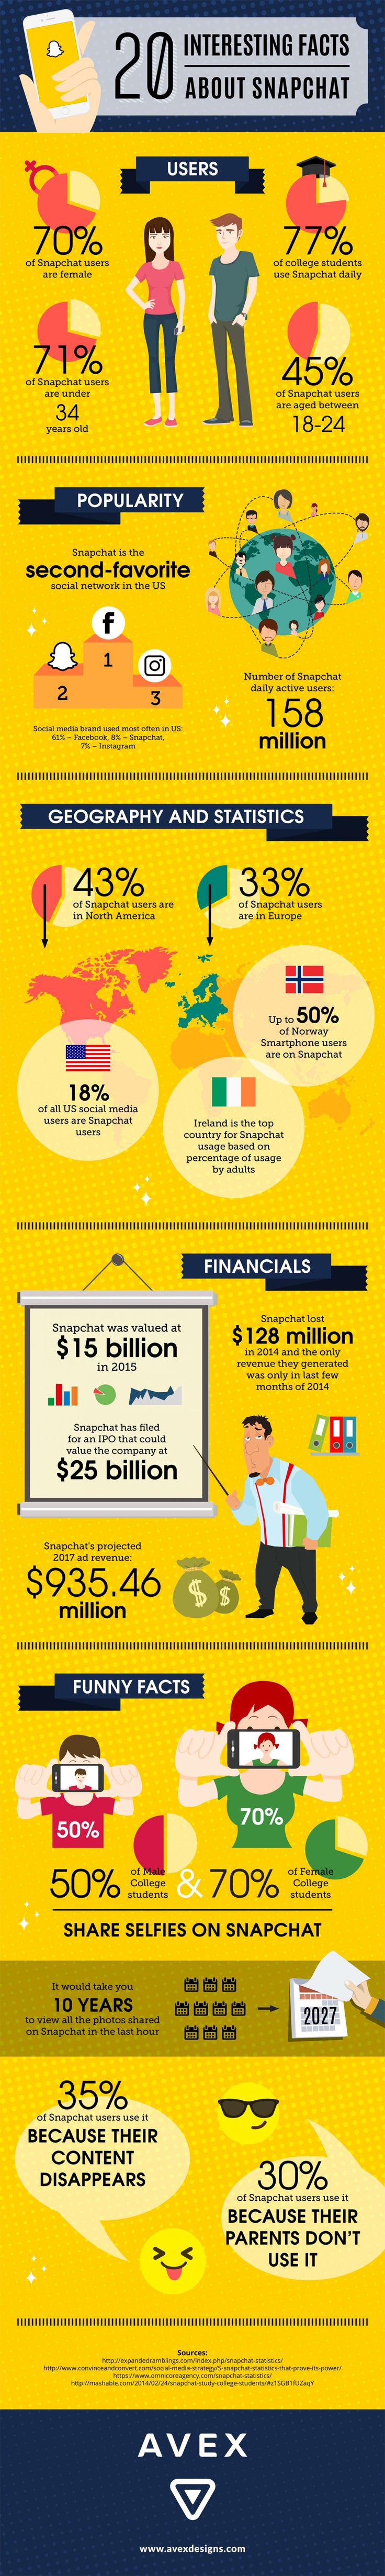 20 Interesting Facts About Snapchat Infographic. Snapchat is gaining popularity. Find out Who use Snapchat and Why! #socialnetwork #socialmedia #Snapchat #web #statistics #internet #young #millennials #infographics